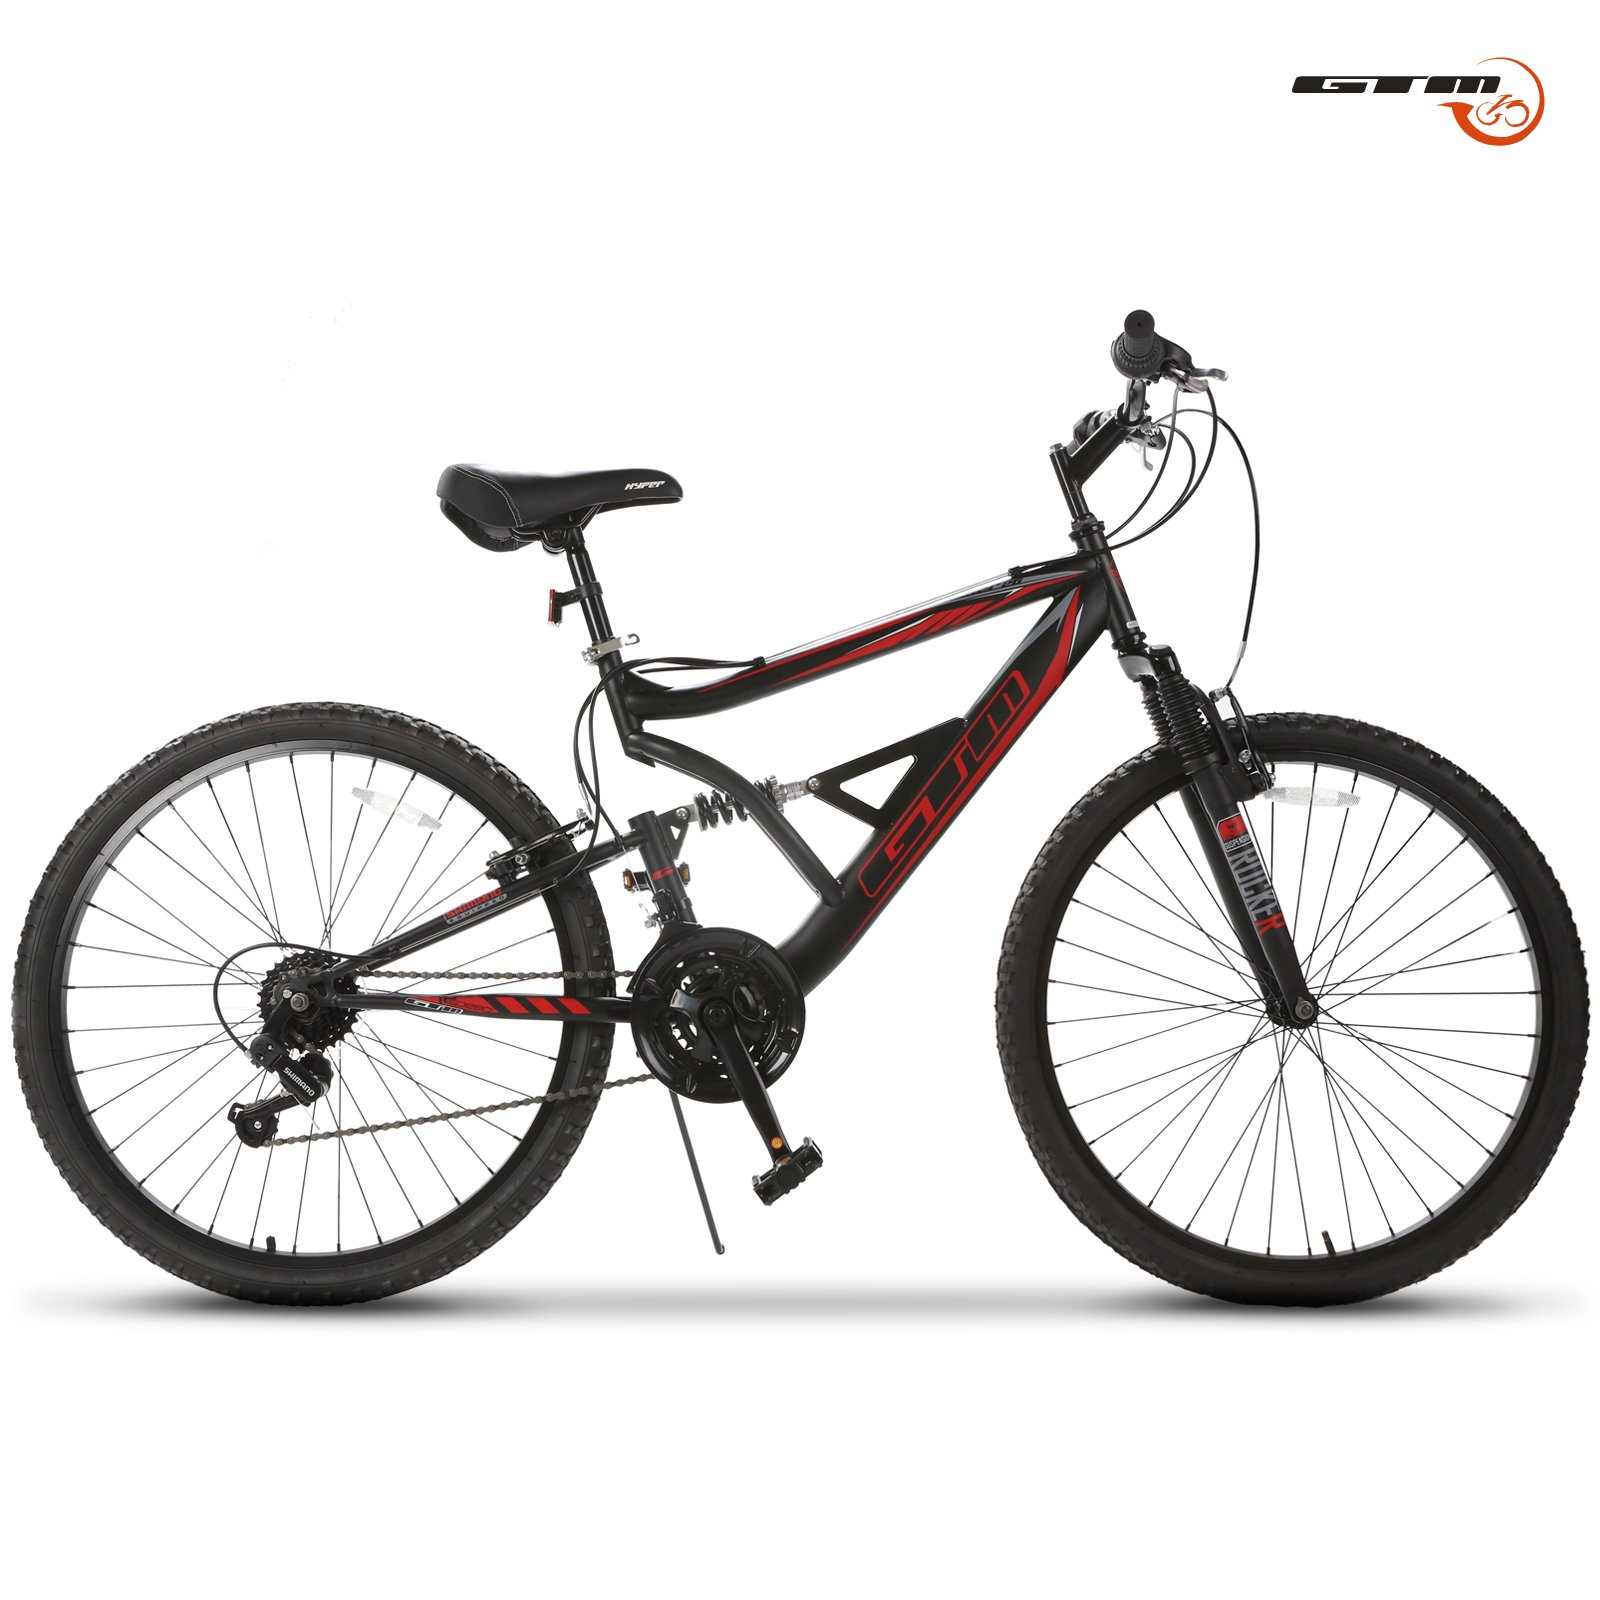 09259e52bfa Get Quotations · GTM 26   Mountain Bike 18 Speed Bicycle Shimano Hybrid  Suspension